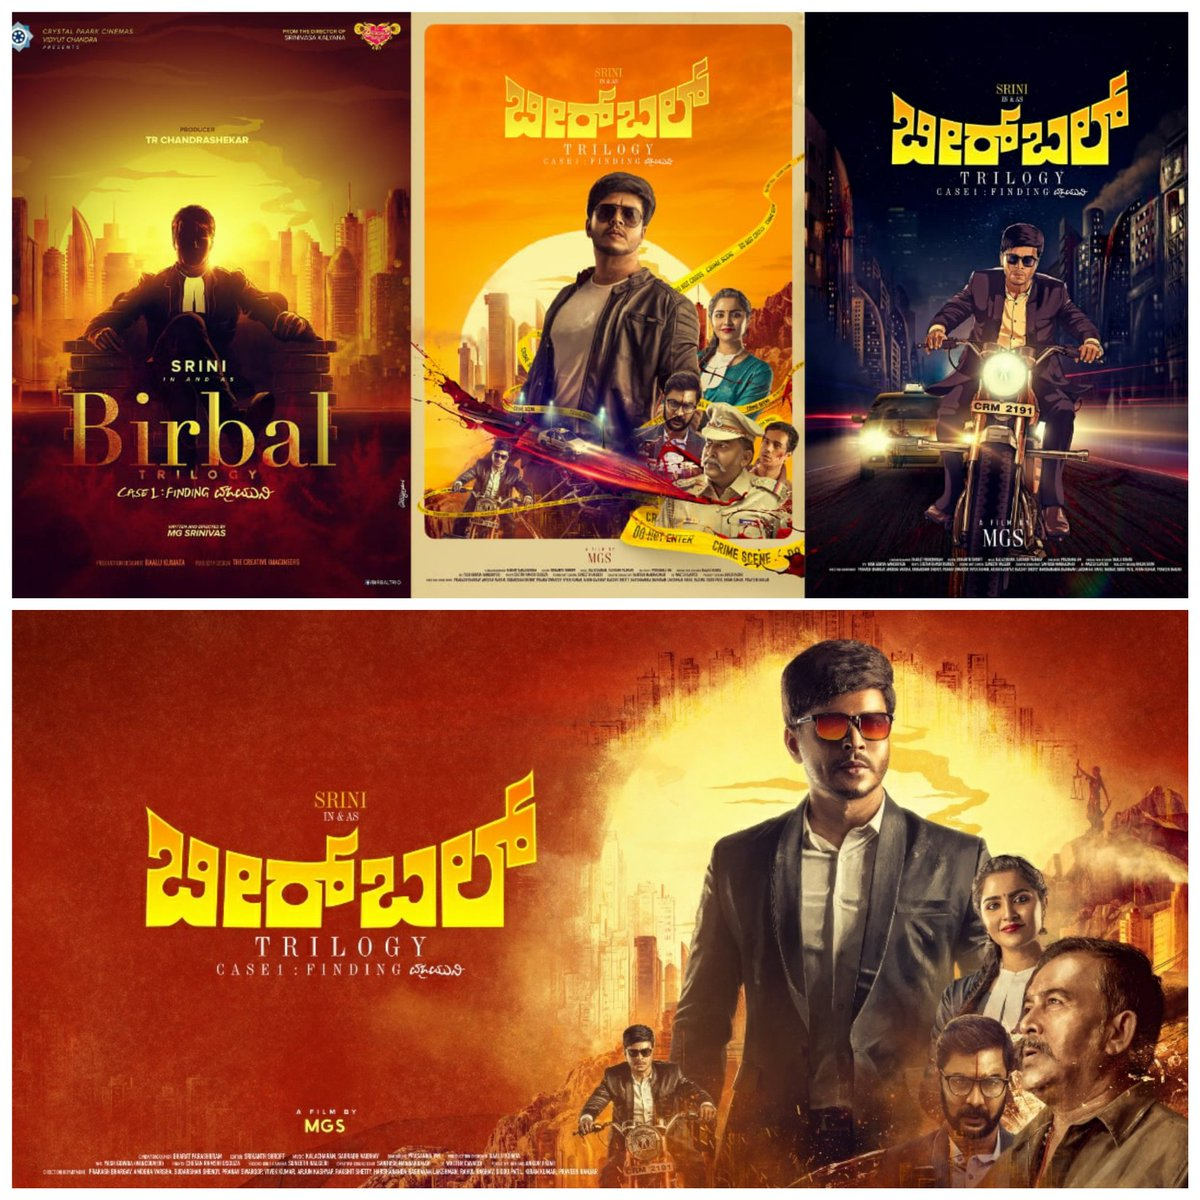 The fate of a film has a lot to do with its #firstlook . In the case of #Birbal as well, it was the posters that helped us grab eyeballs and #Australian based designer #AnkurPatar is the man behind these poster designs. He is rated as #India's second best #illustratorpic.twitter.com/7Dv7gwl5oA